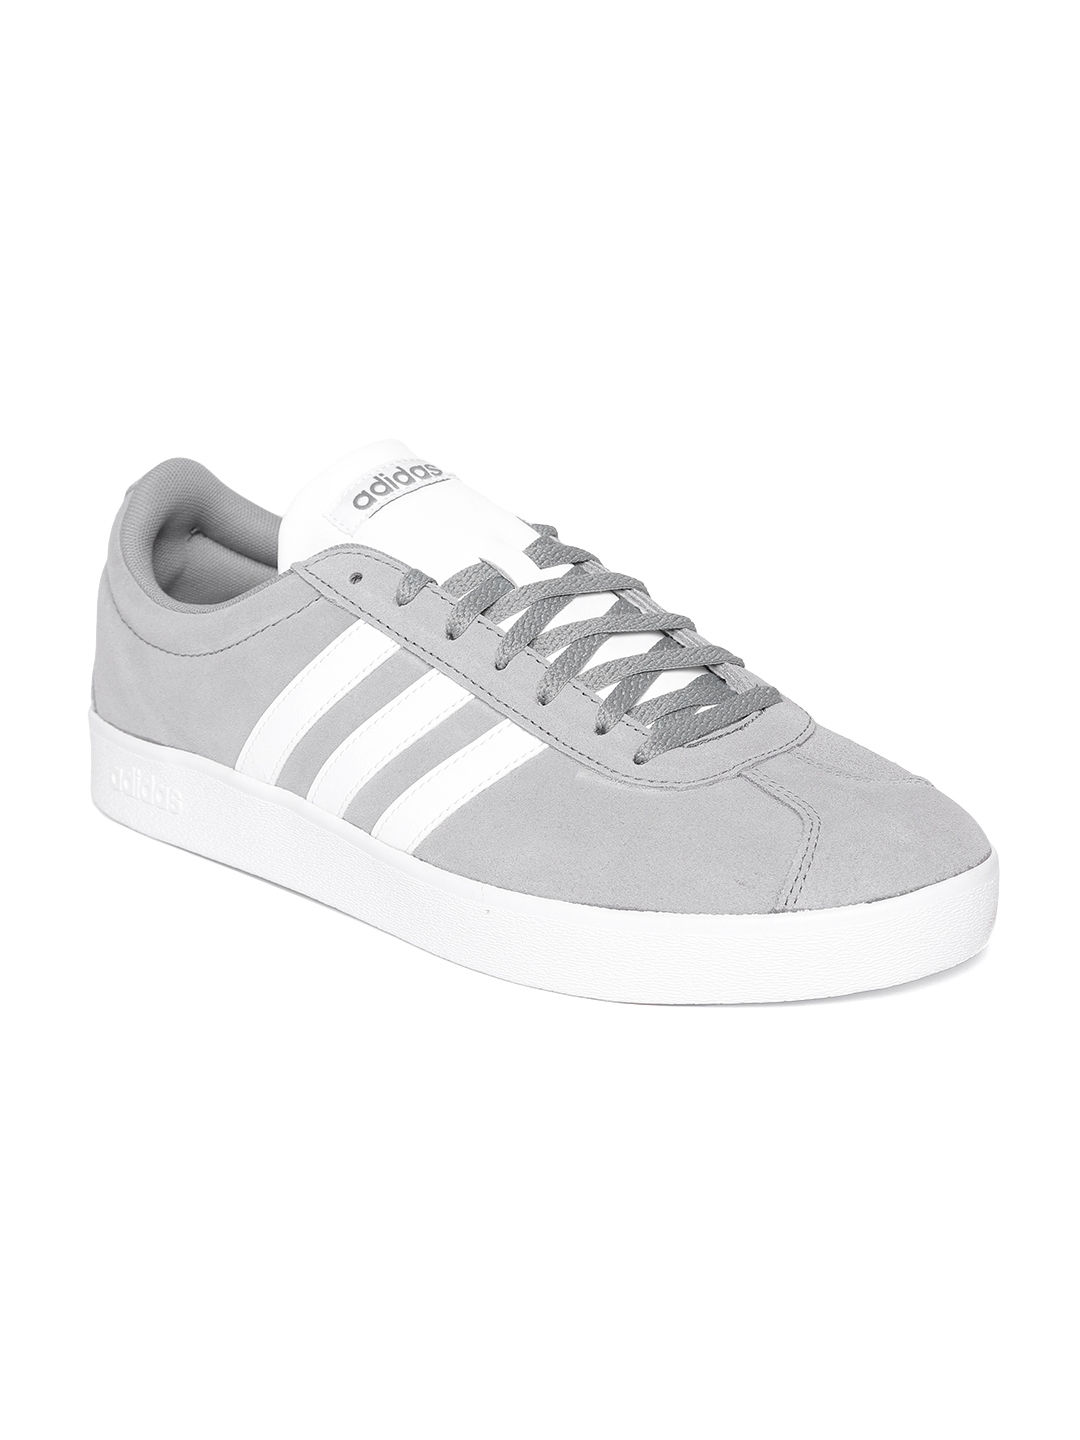 9deb10749cf Buy ADIDAS Originals Men Grey VL Court 2.0 Suede Skateboarding Shoes ...